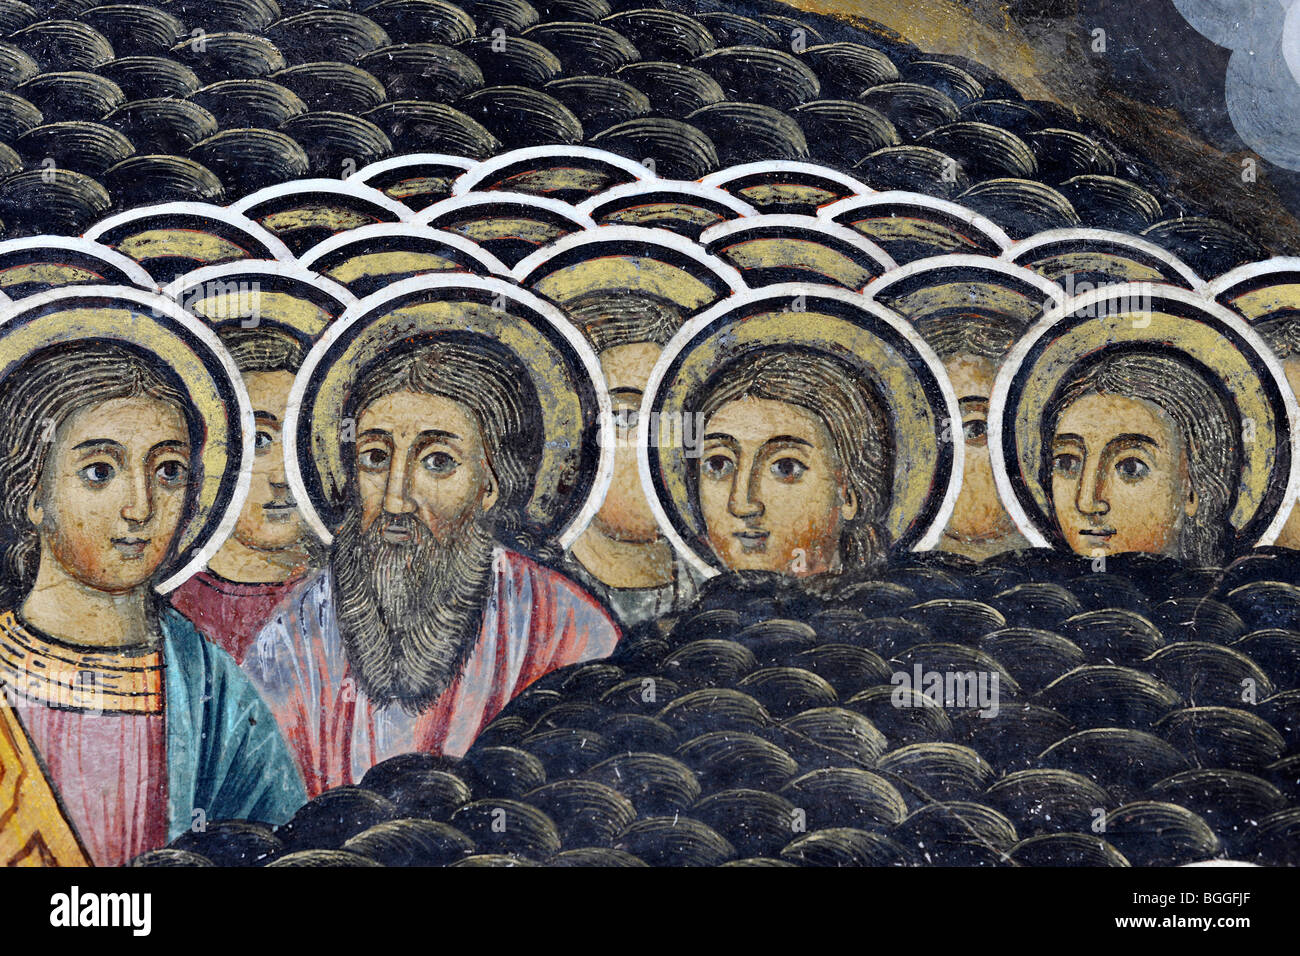 Rila Monastery fresco with detail of saints - Stock Image